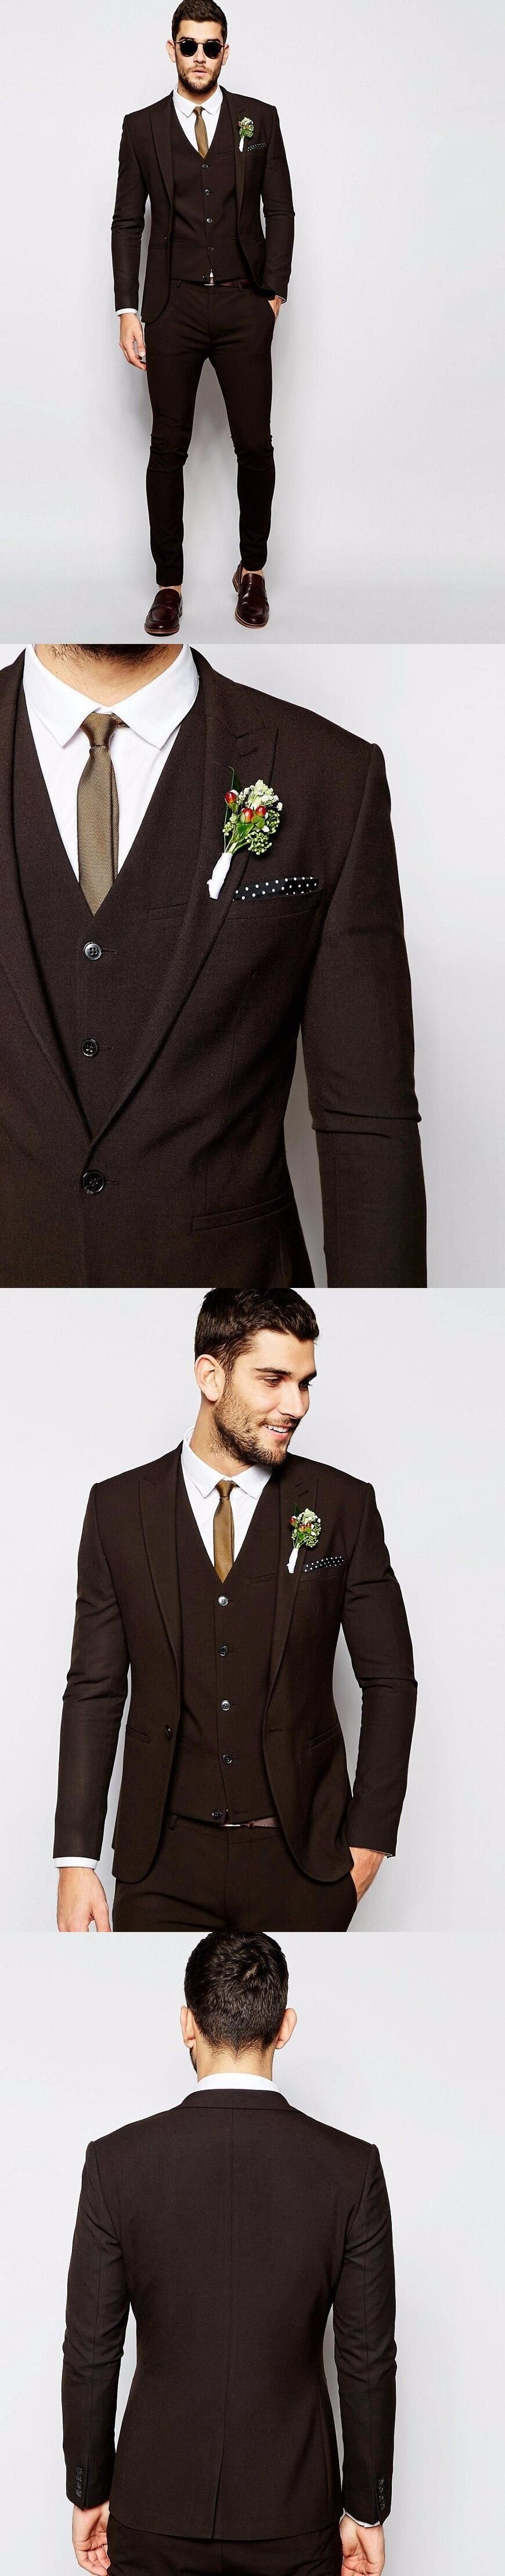 Fashionable Brown Groom Tuxedos Groomsmen Mens Wedding Suits Prom ...